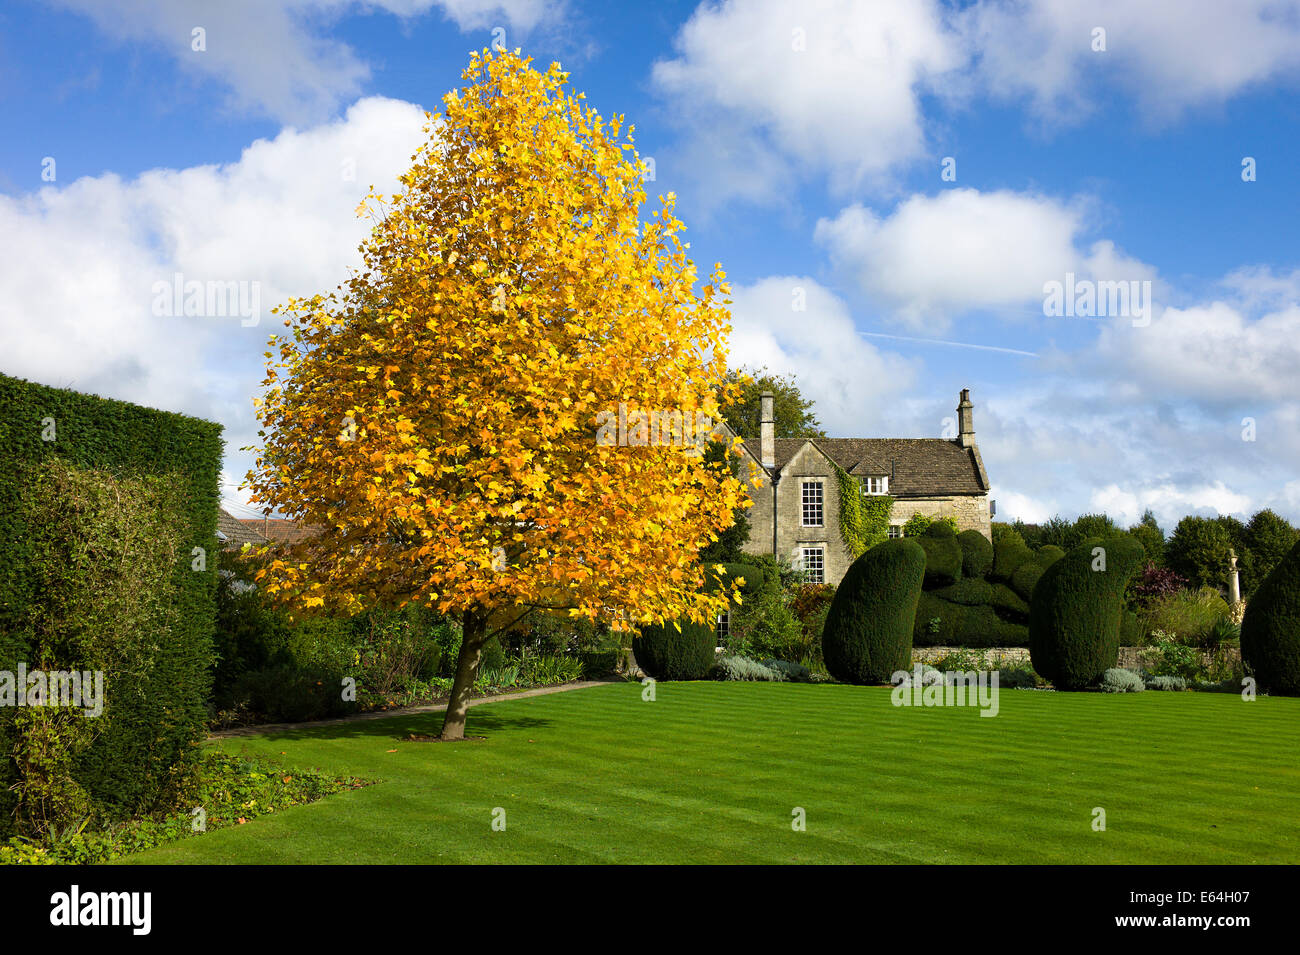 Young tulip tree in autumn - Stock Image